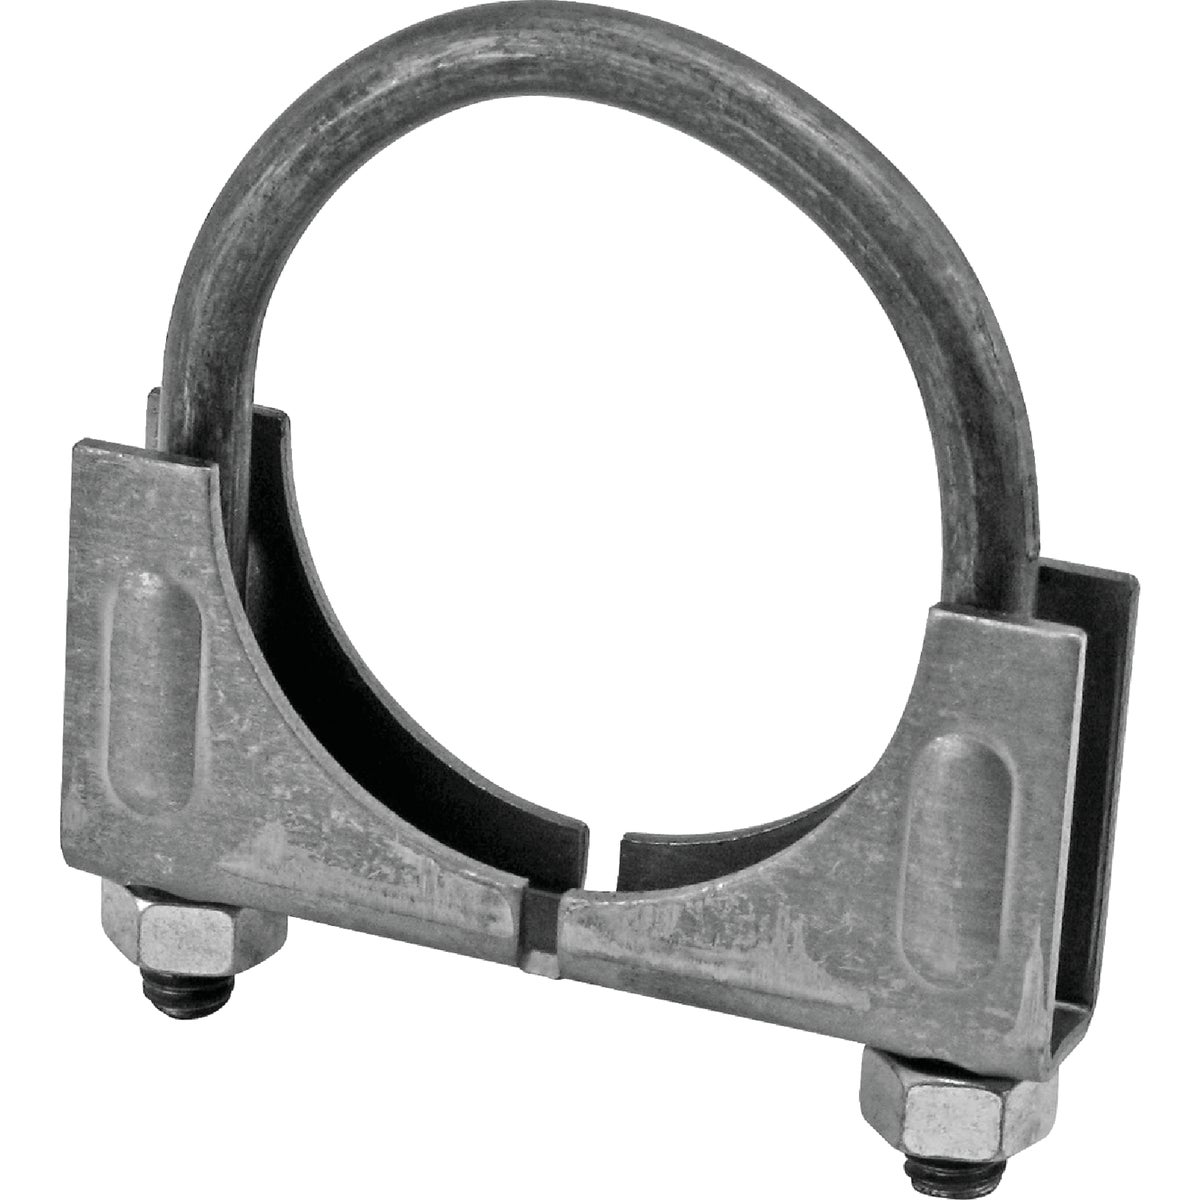 "1-7/8"" MUFFLER CLAMP - V826 by Bell Automotive Prod"